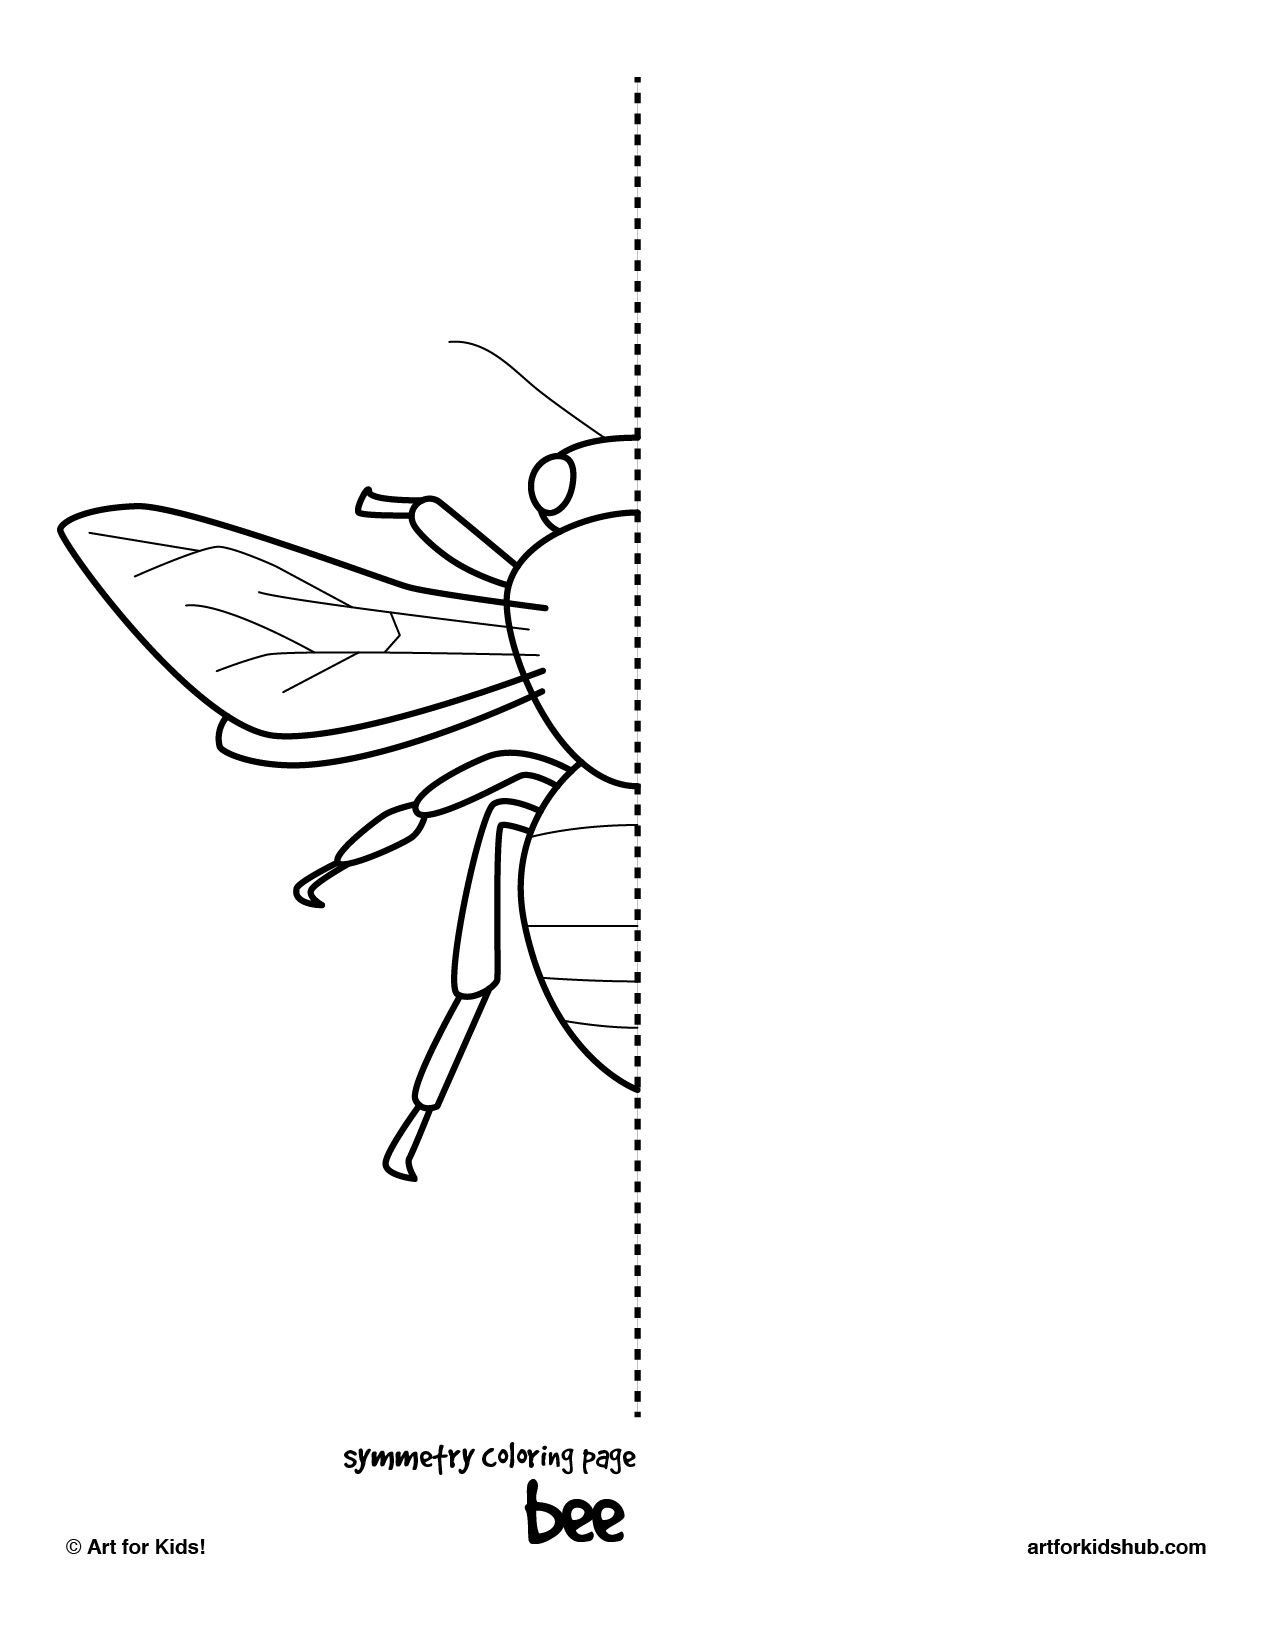 10 Free Coloring Pages - Bug Symmetry - Art For Kids Hub -   Escuela ...